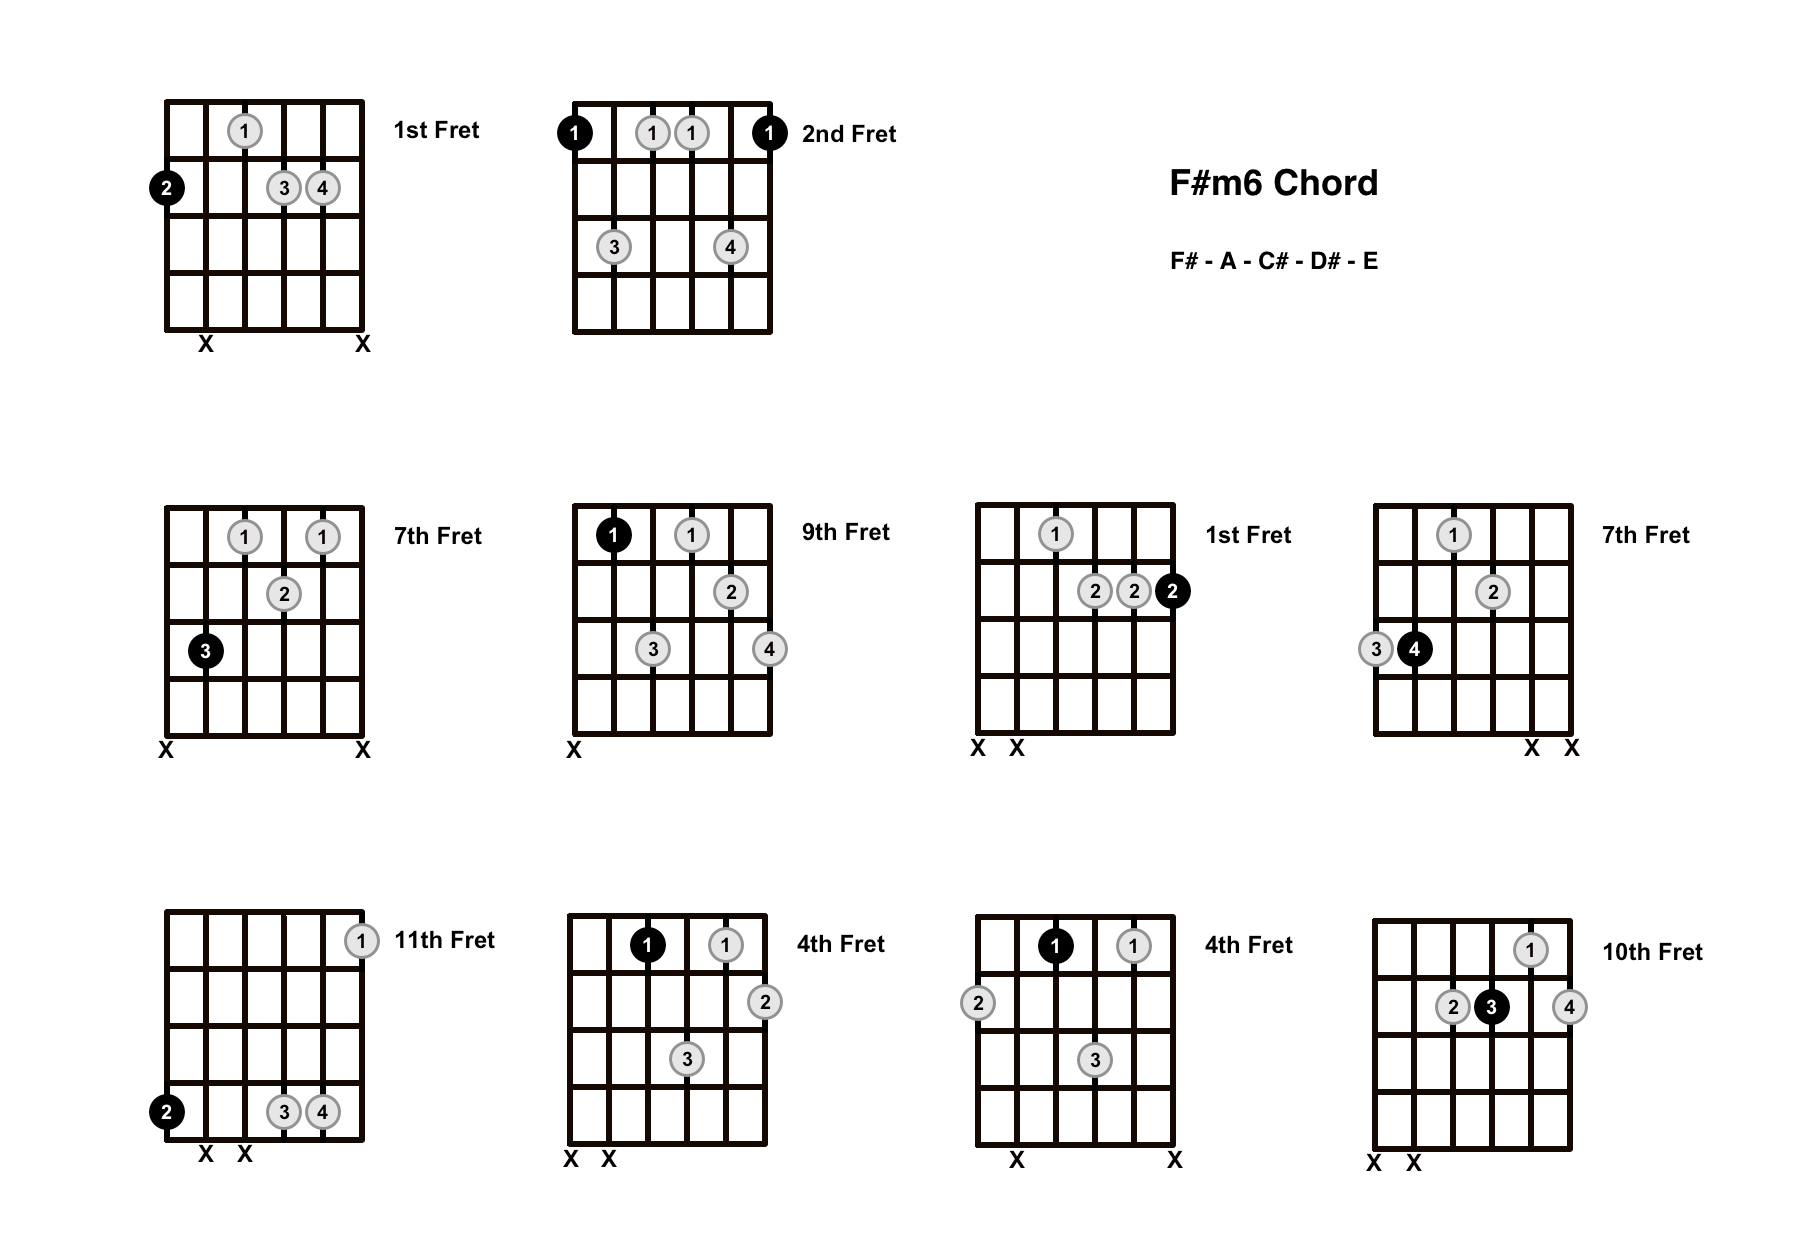 F#m6 Chord On The Guitar (F Sharp minor 6) – Diagrams, Finger Positions and Theory